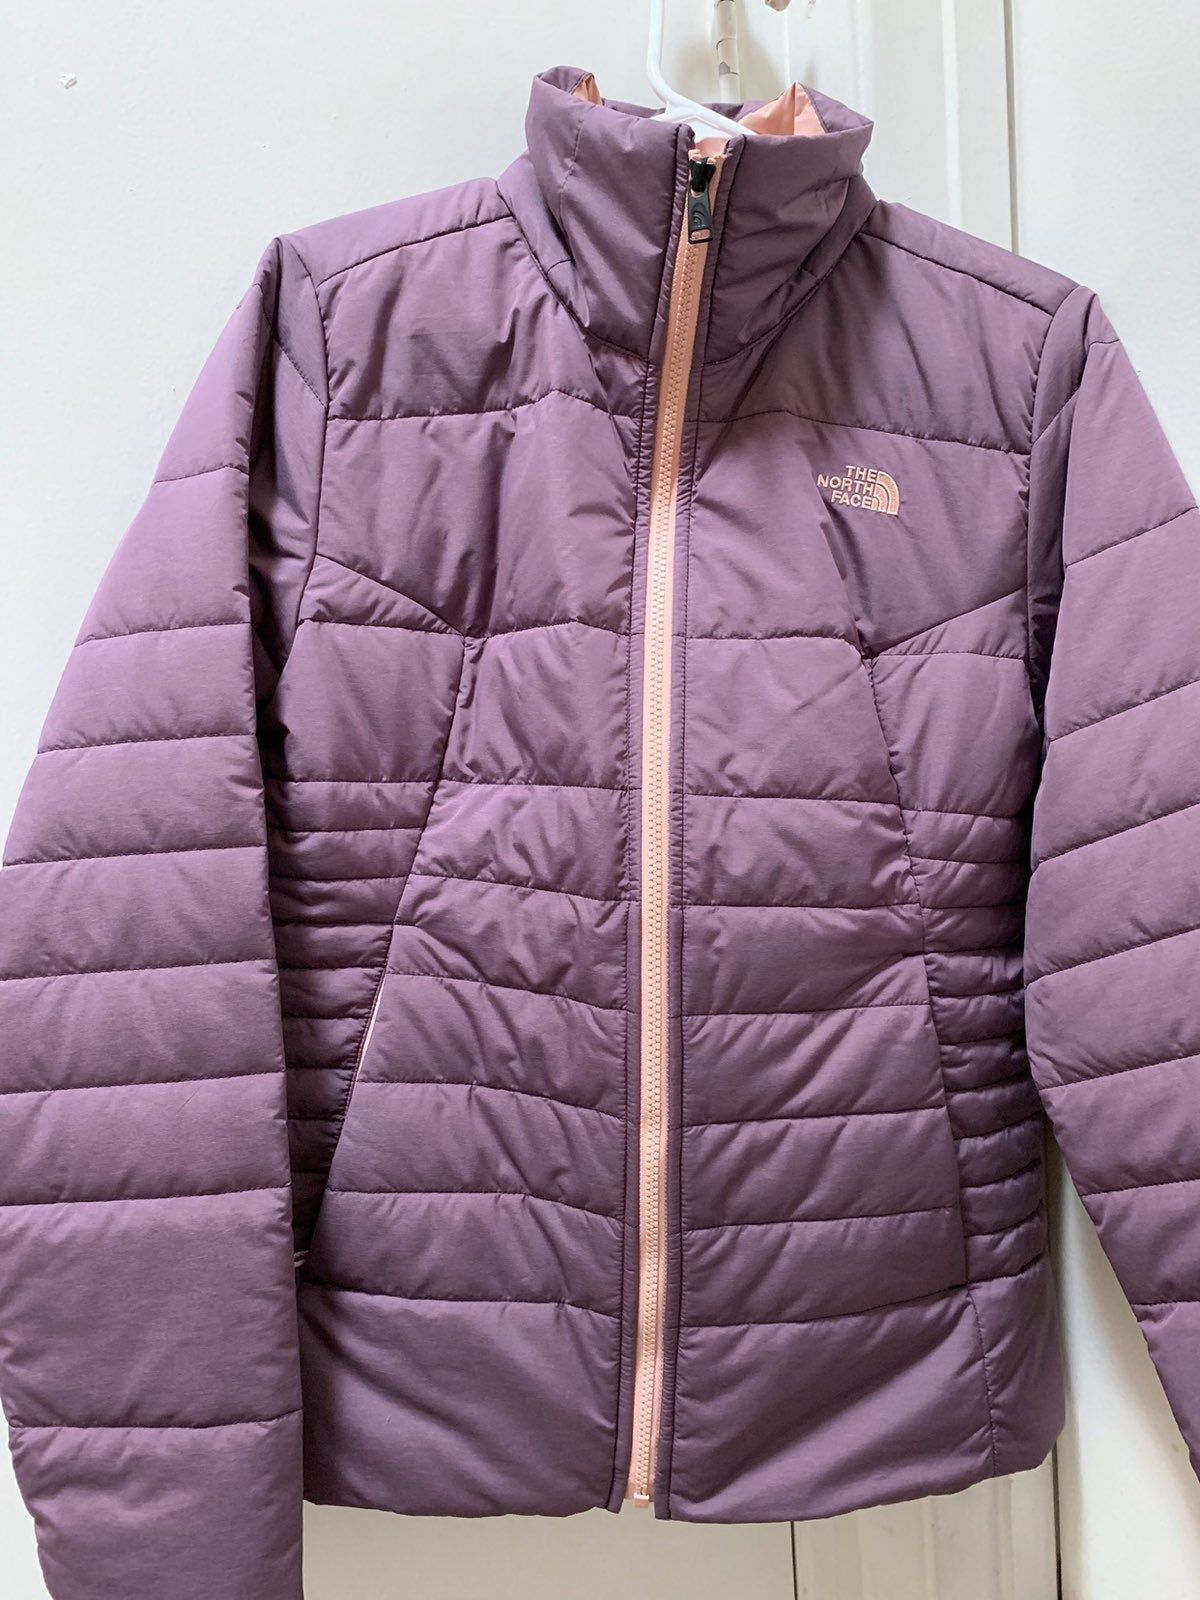 North Face Jacket Never Used North Face Jacket North Face Rain Jacket Jackets [ 1600 x 1200 Pixel ]